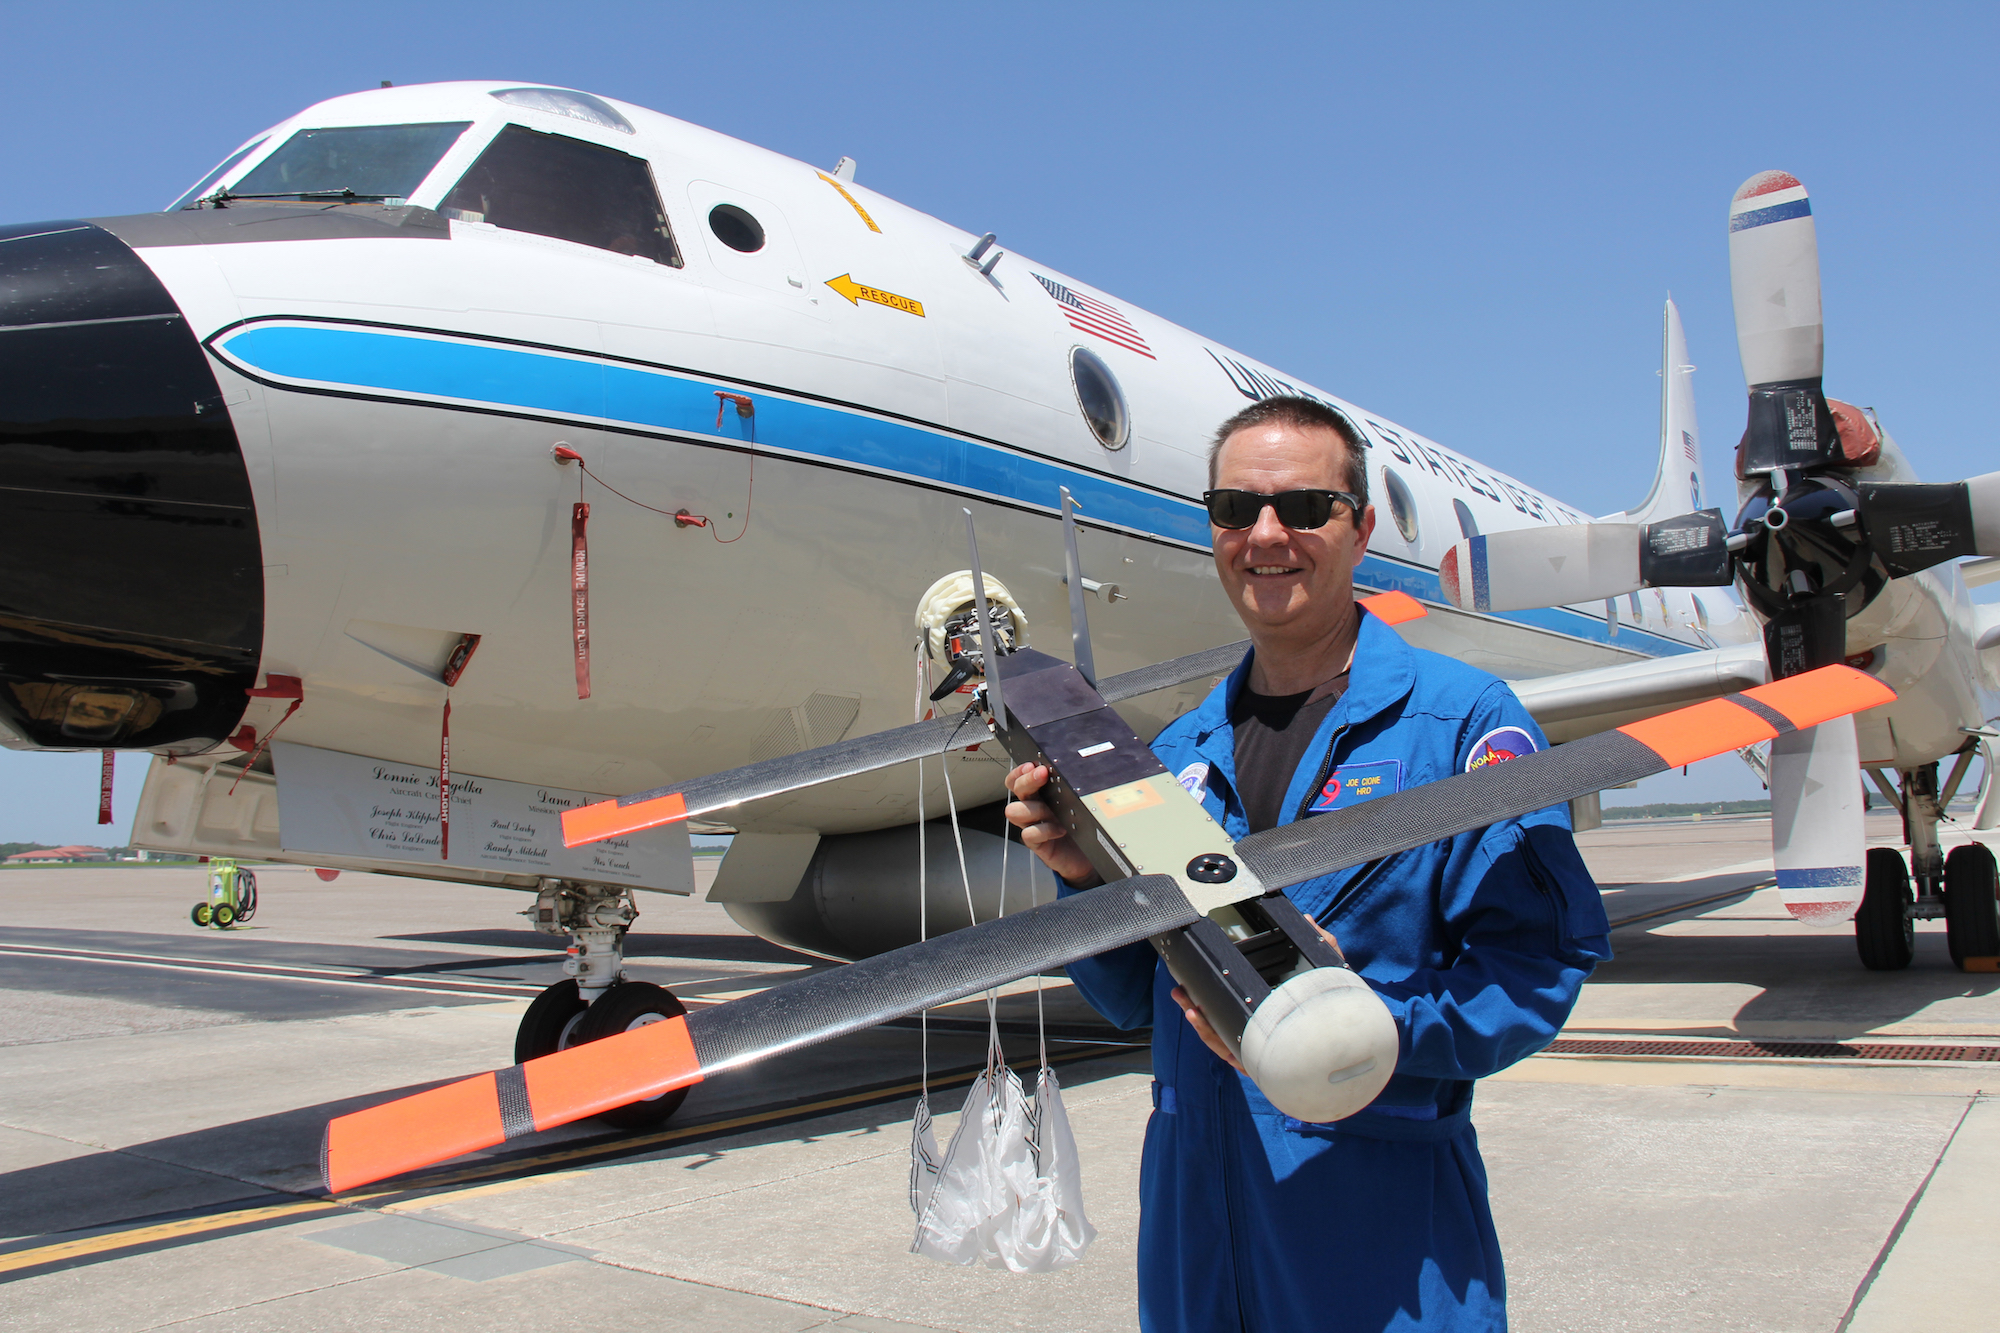 Dr. Joe Cione, hurricane researcher at NOAA's Atlantic Oceanographic and Meteorological Laboratory and chief scientist of the Coyote program, holds the Coyote in front of NOAA's P-3 aircraft at MacDill Air Force Base. Image credit: NOAA